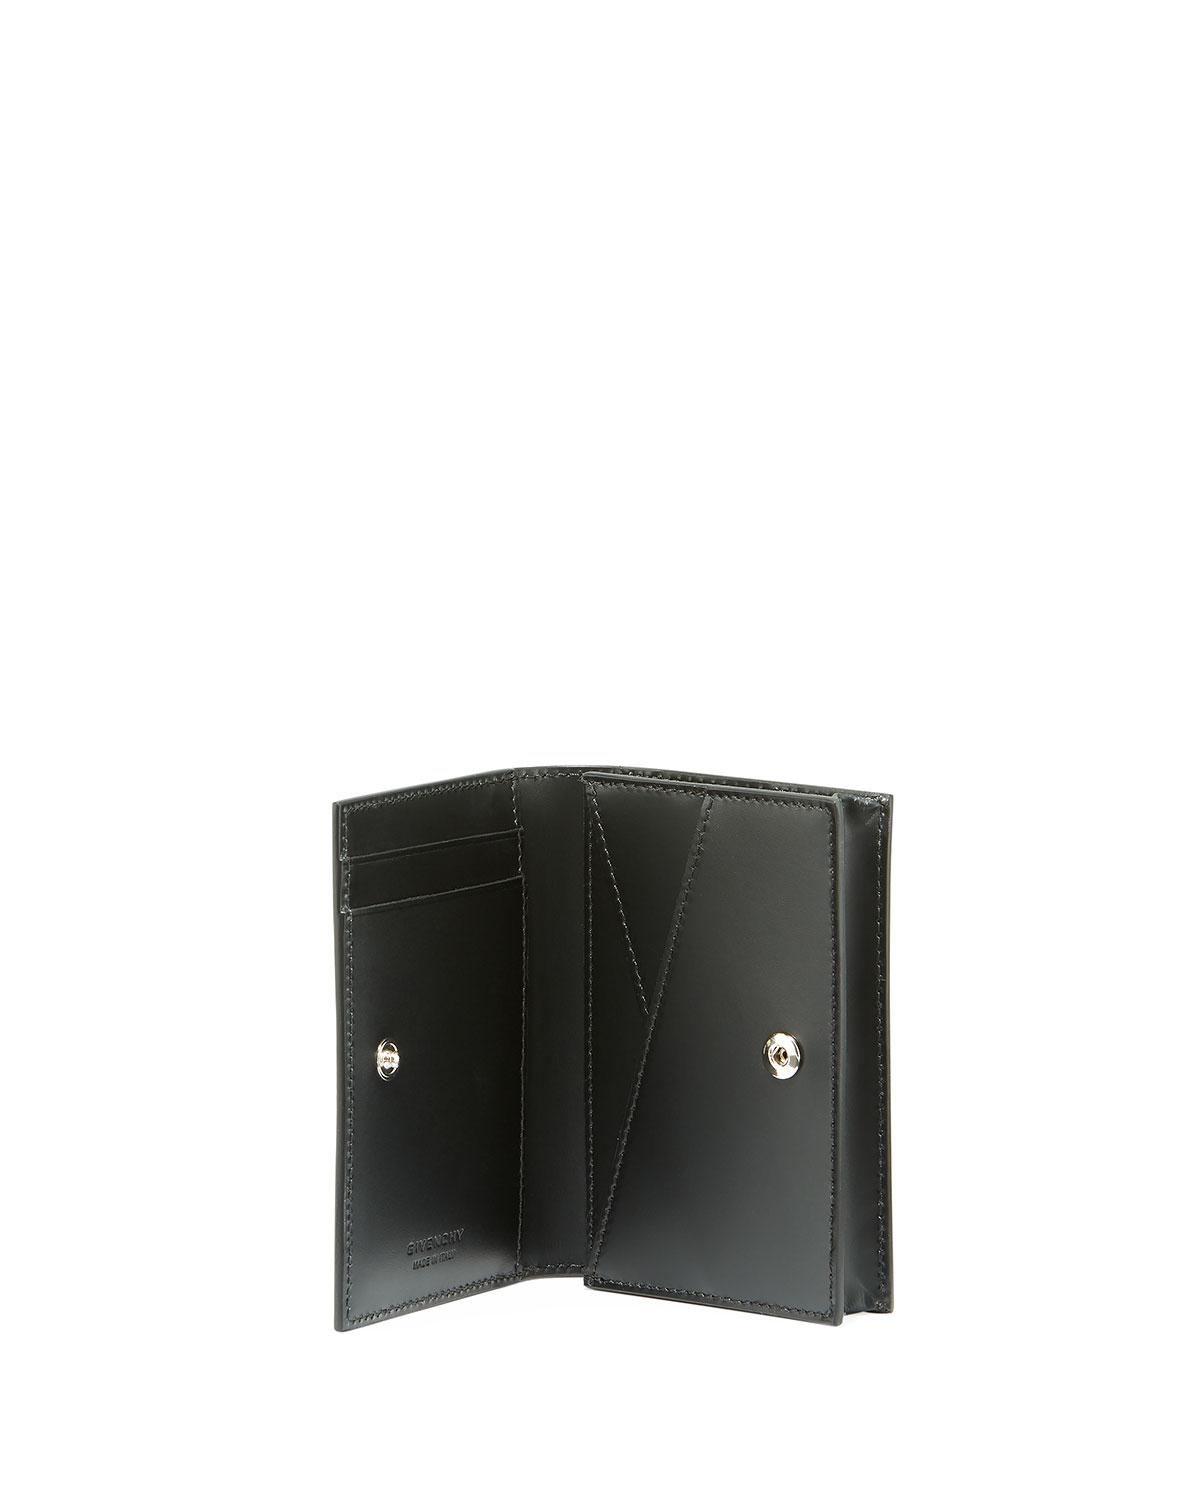 Lyst - Givenchy Camouflage Leather Business Card Case